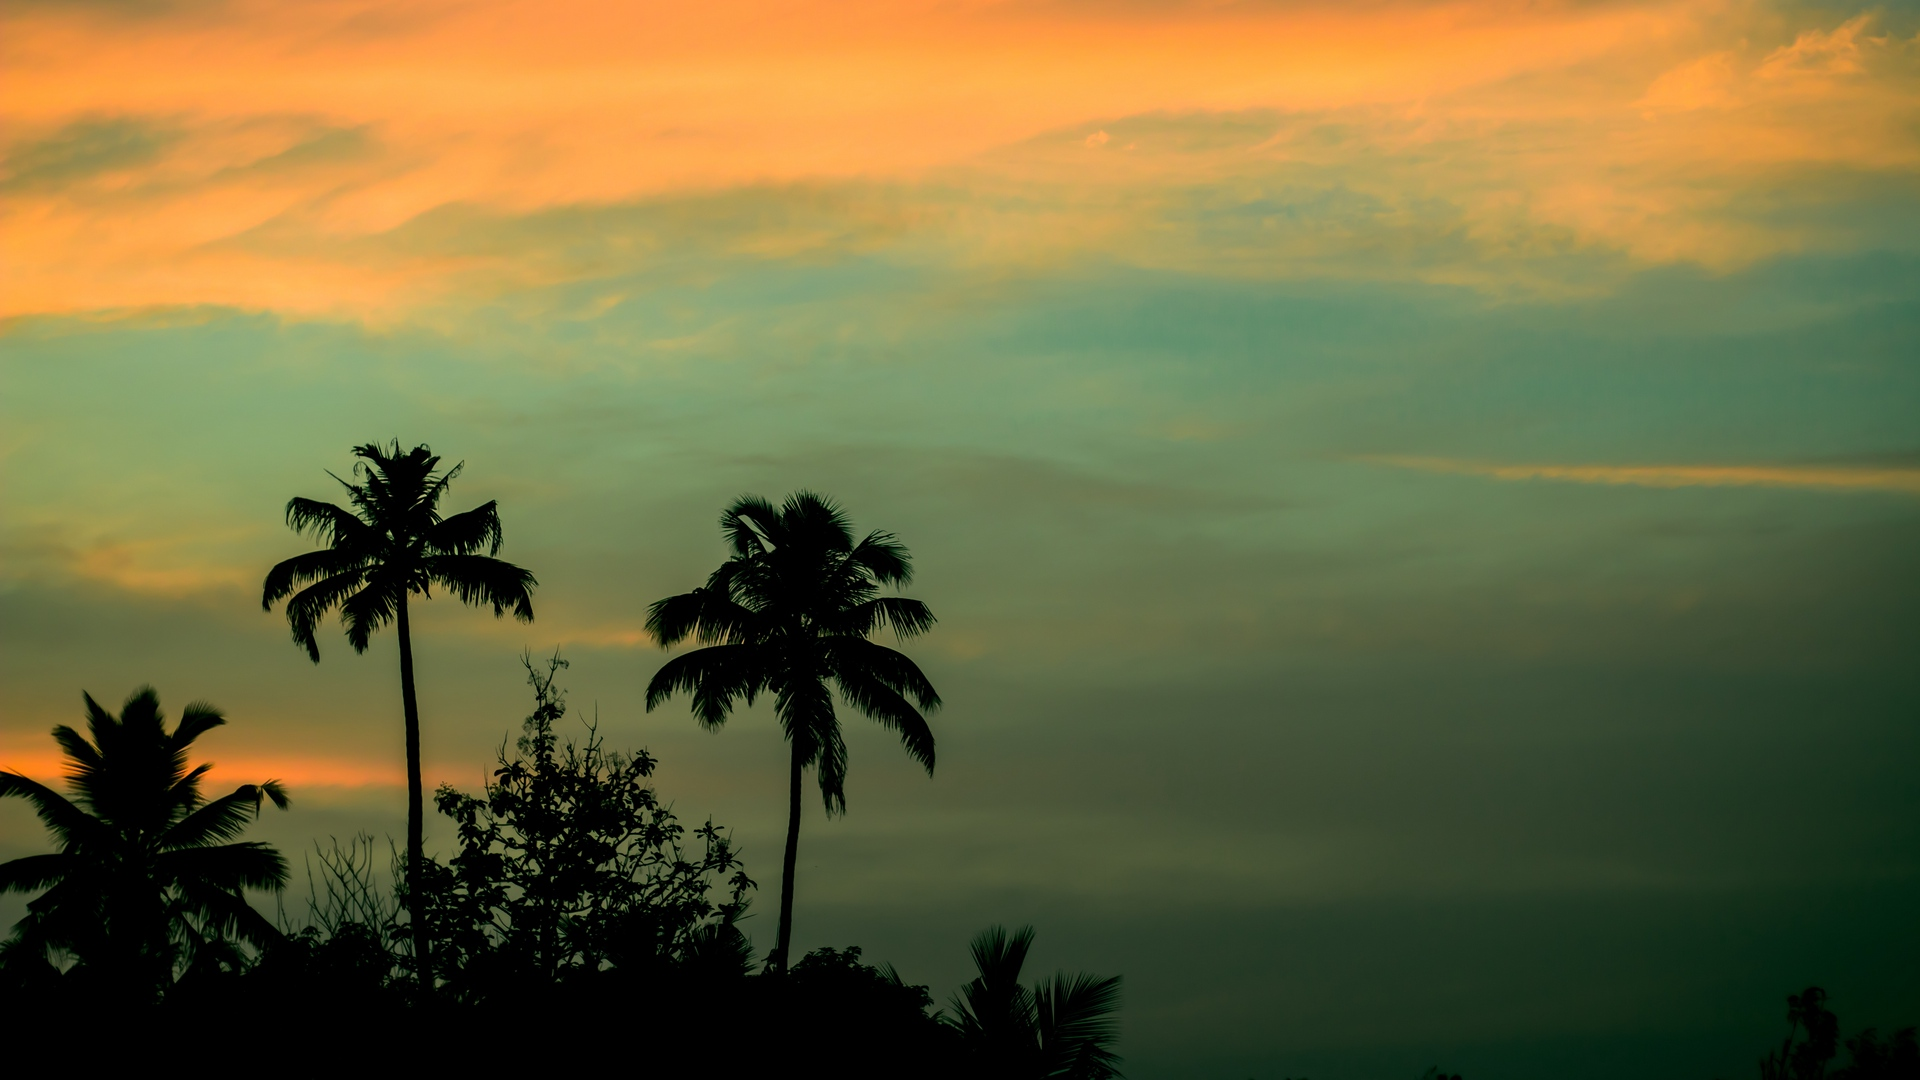 palms sunset sky